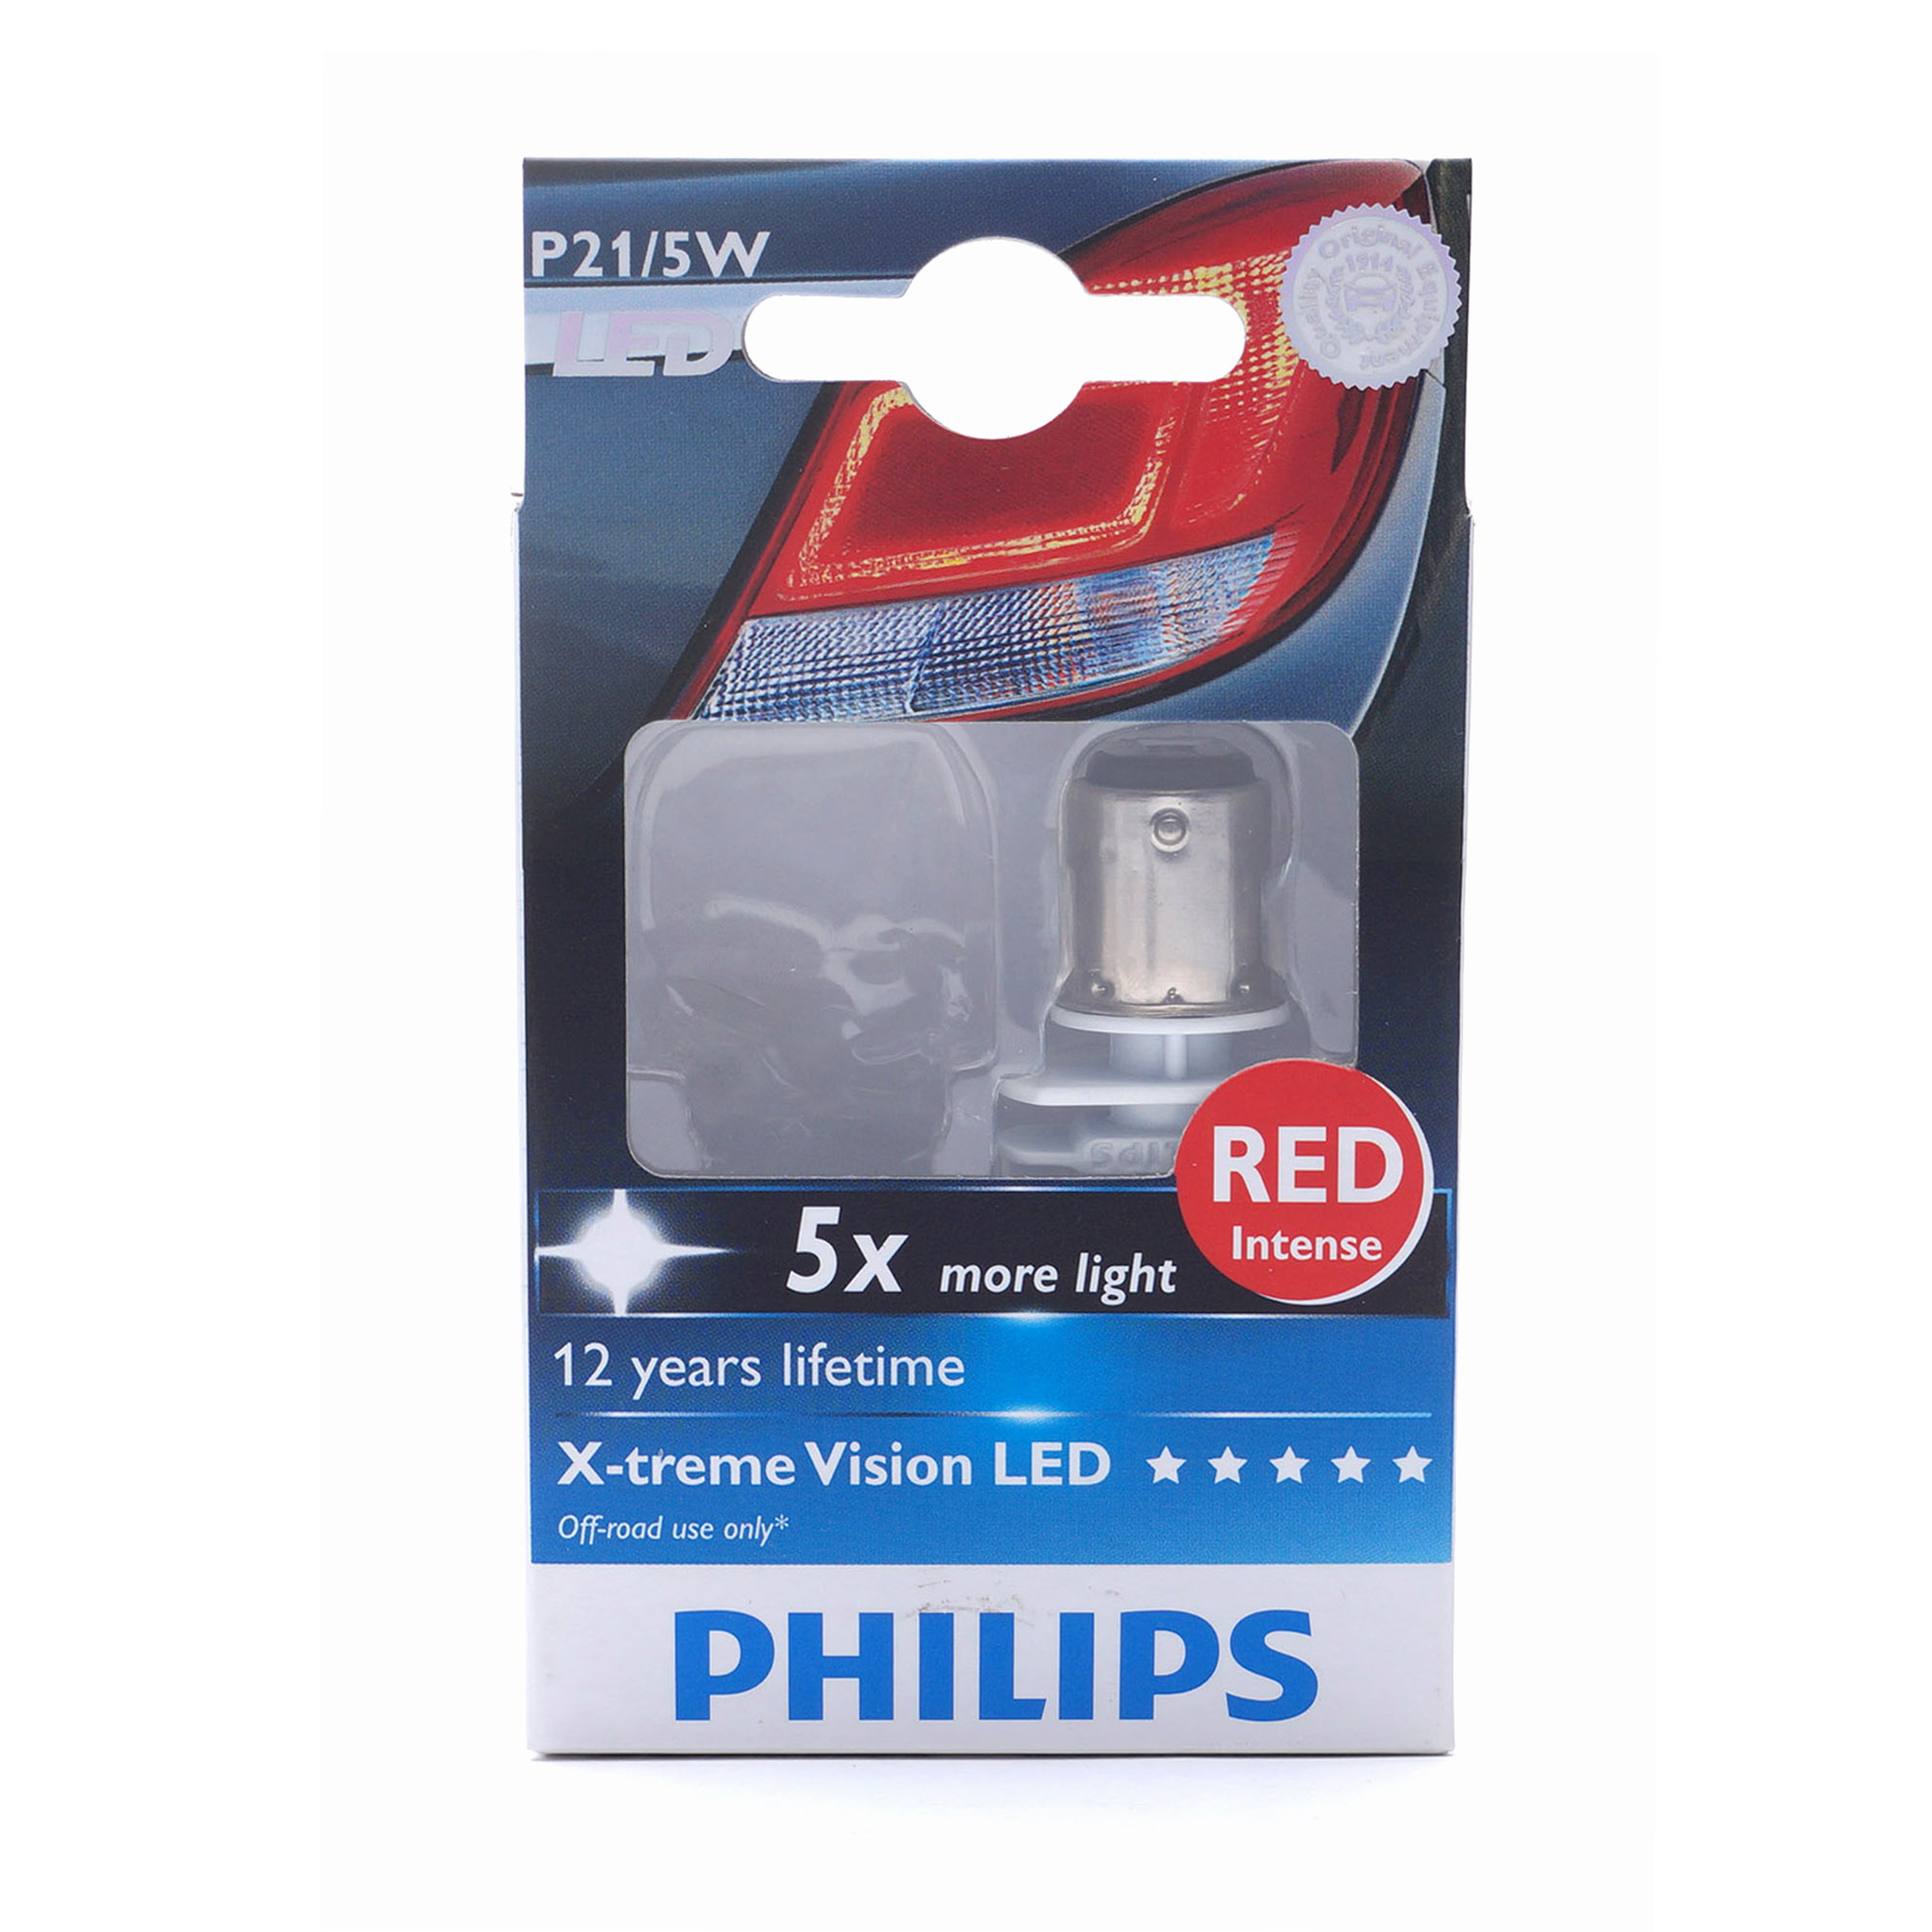 Автолампа светодиодная P21/5W 12/24V X-treme Vision LED Red intense (Philips)